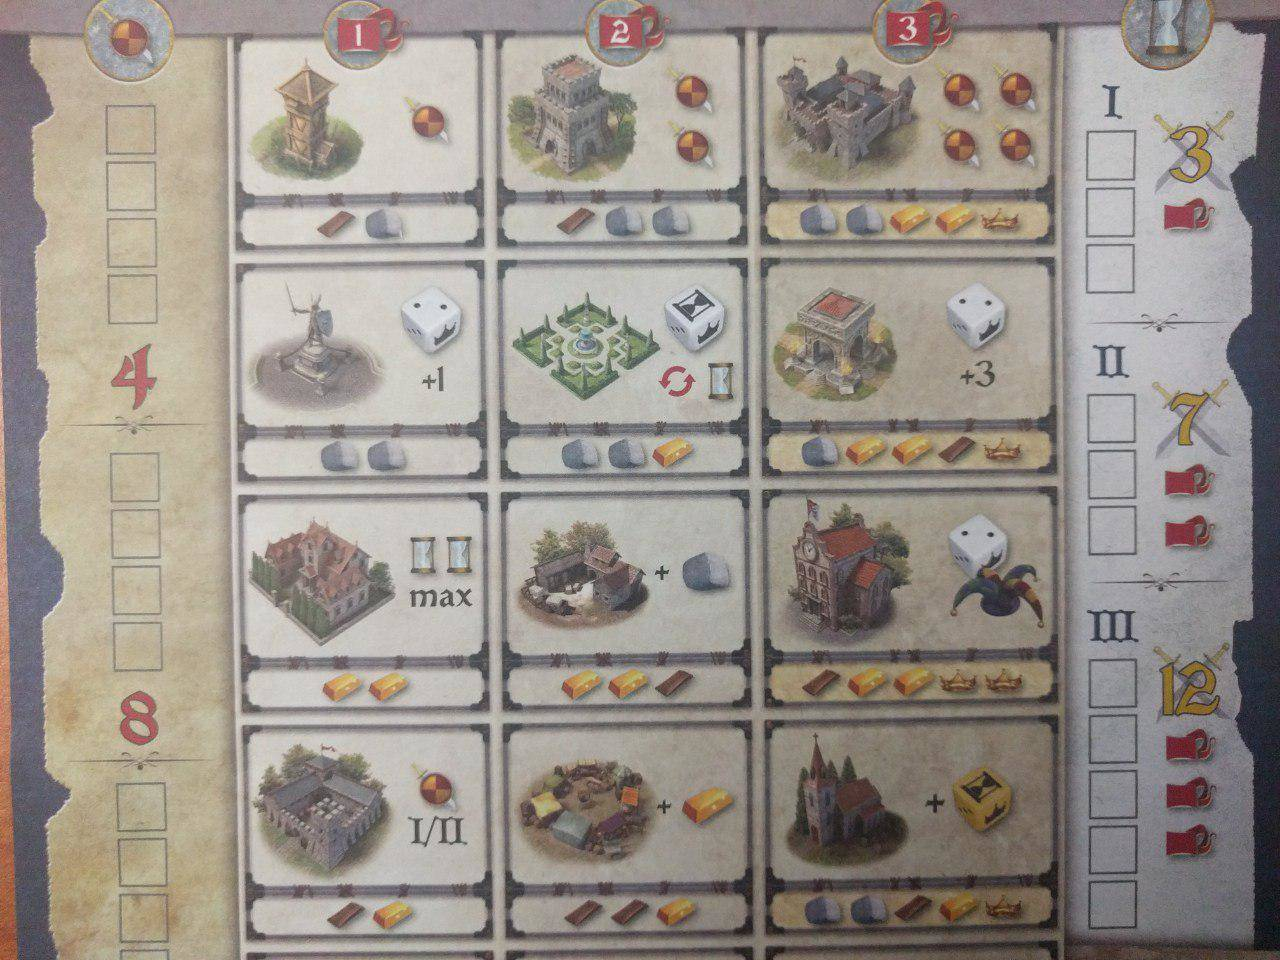 Kingsburg the Dice Game